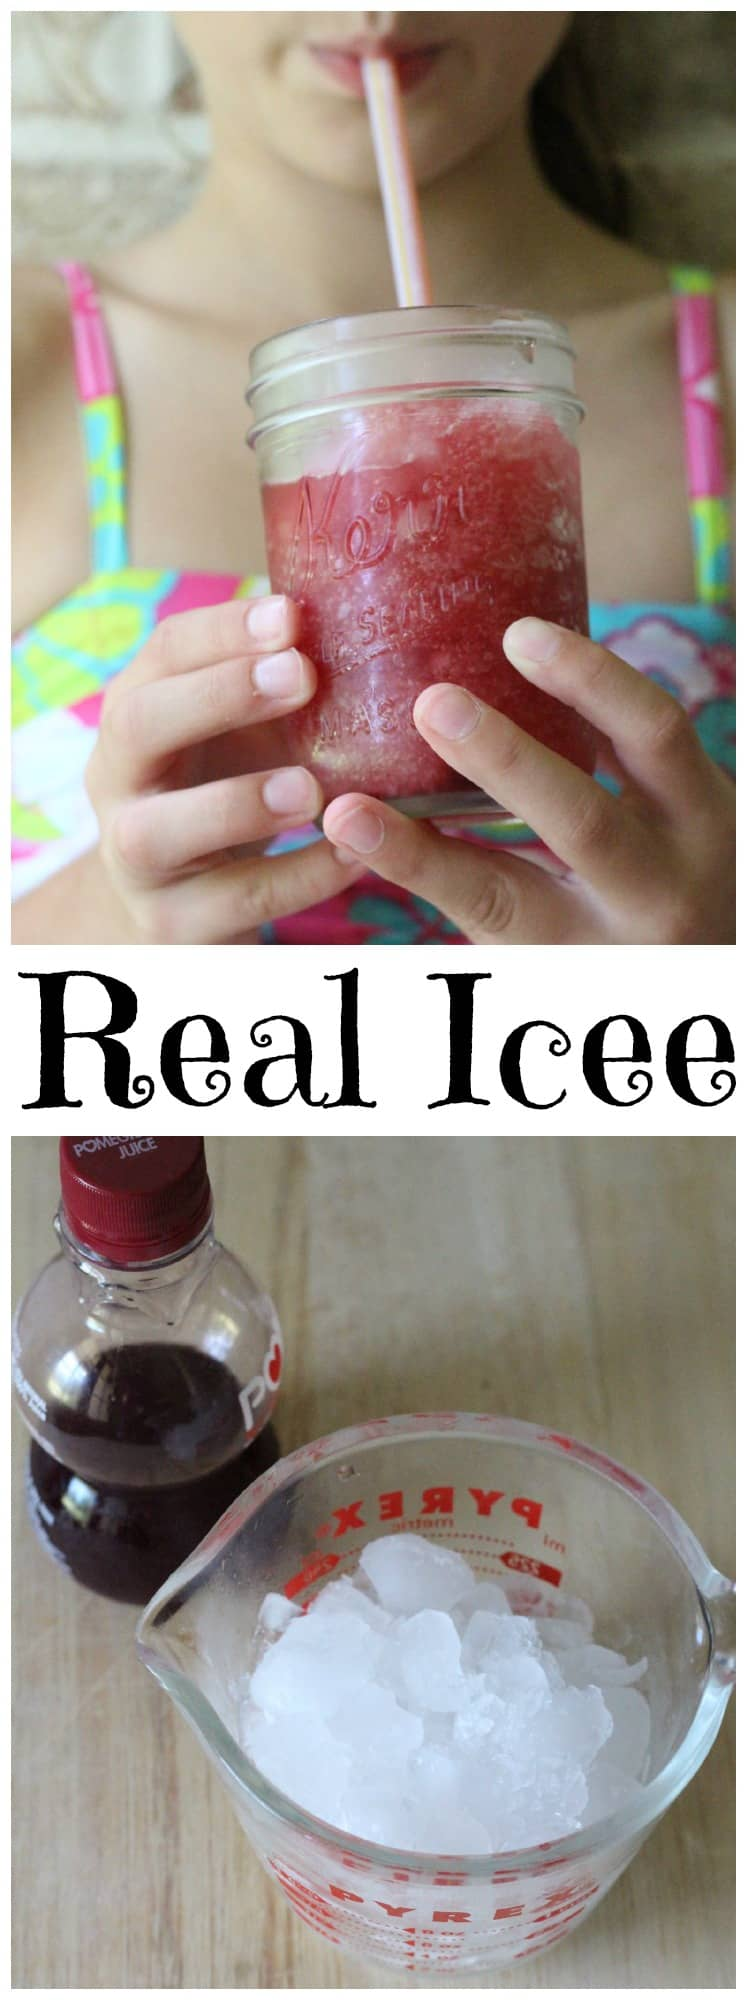 My homemade Icee recipe has a fraction of the sugars, none of the artificial colors, real flavor and all of the